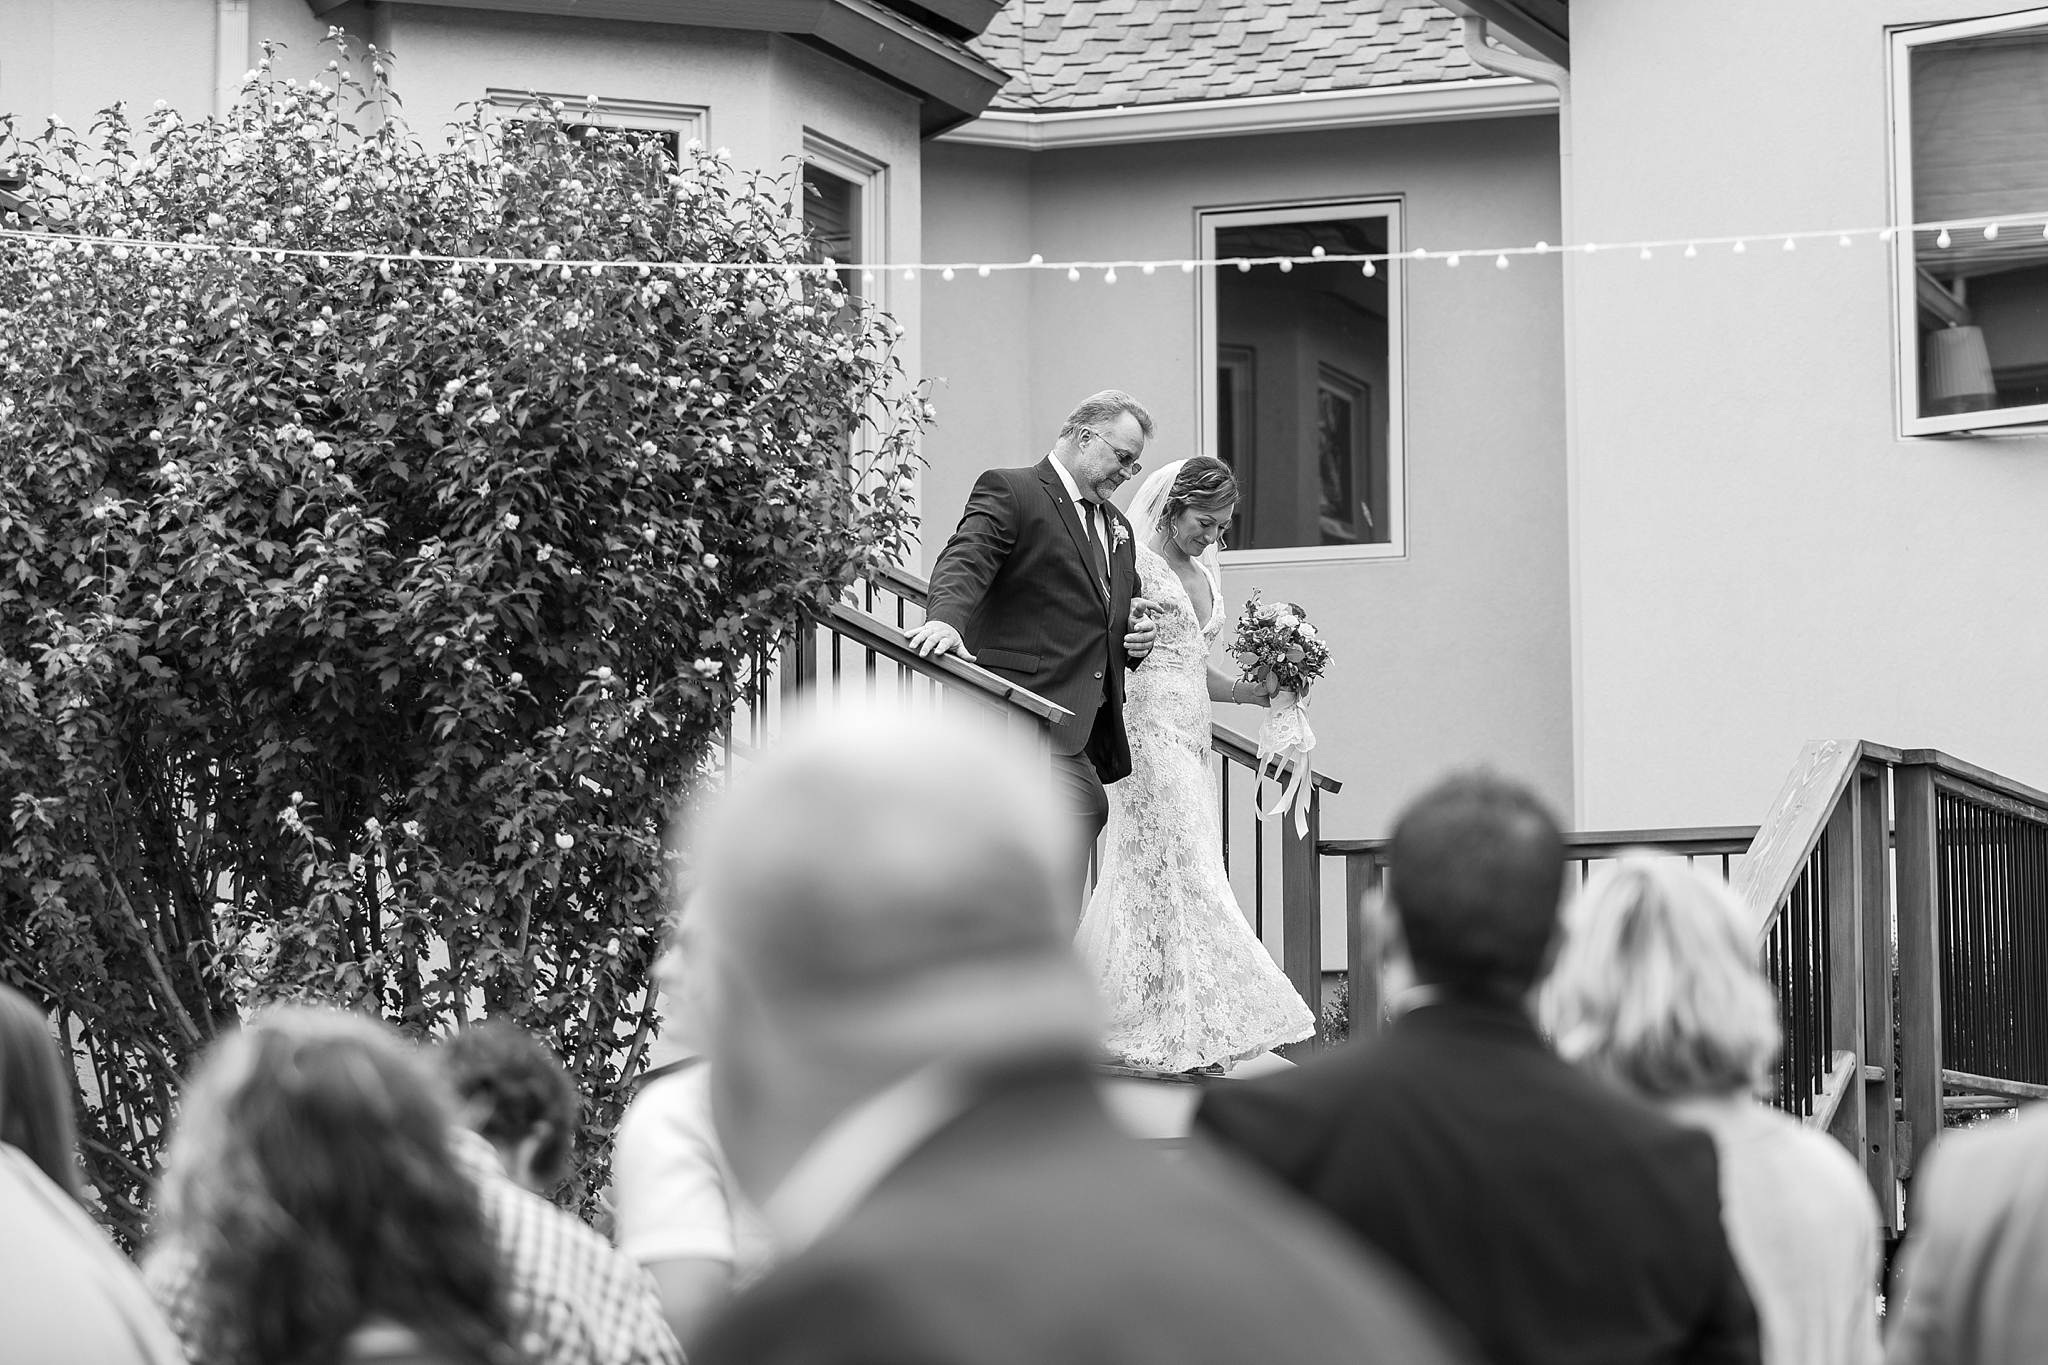 romantic-artful-candid-wedding-photos-in-detroit-lansing-ann-arbor-northern-michigan-and-chicago-by-courtney-carolyn-photography_0083.jpg